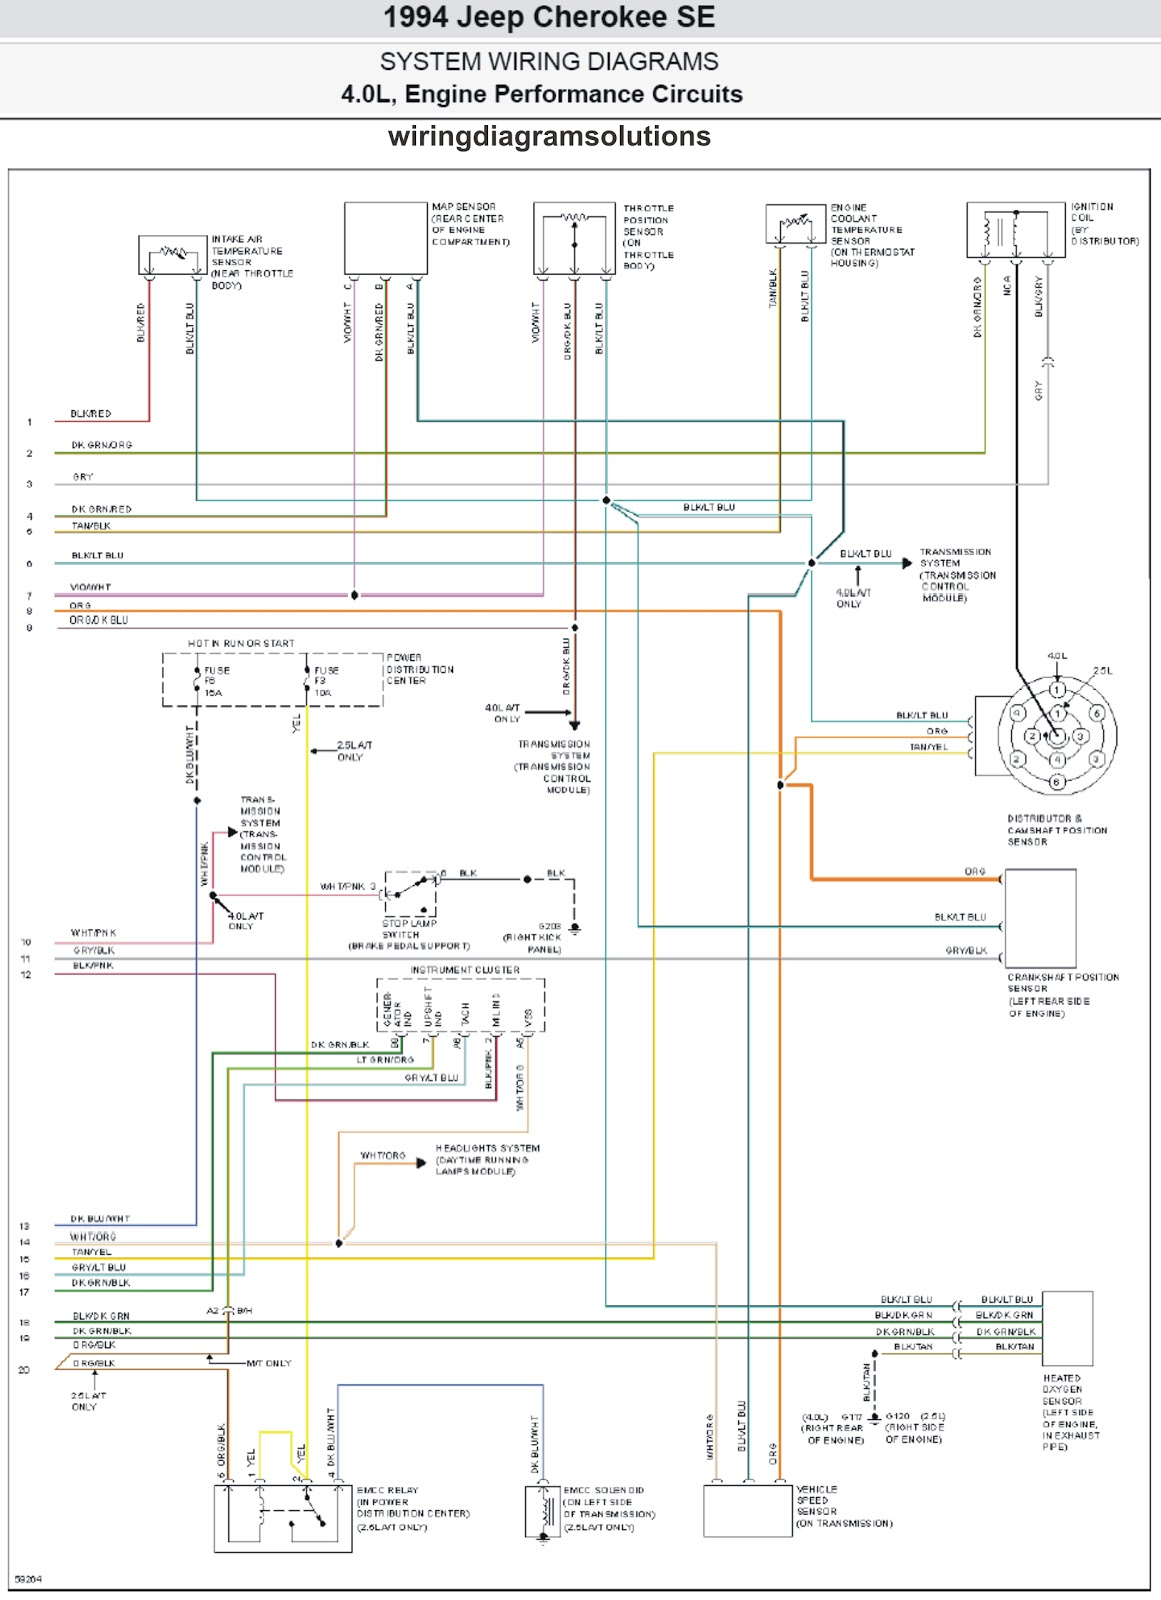 1994+Jeep+Cherokee+SE_2 2005 grand cherokee wiring diagram 2005 free wiring diagrams  at crackthecode.co